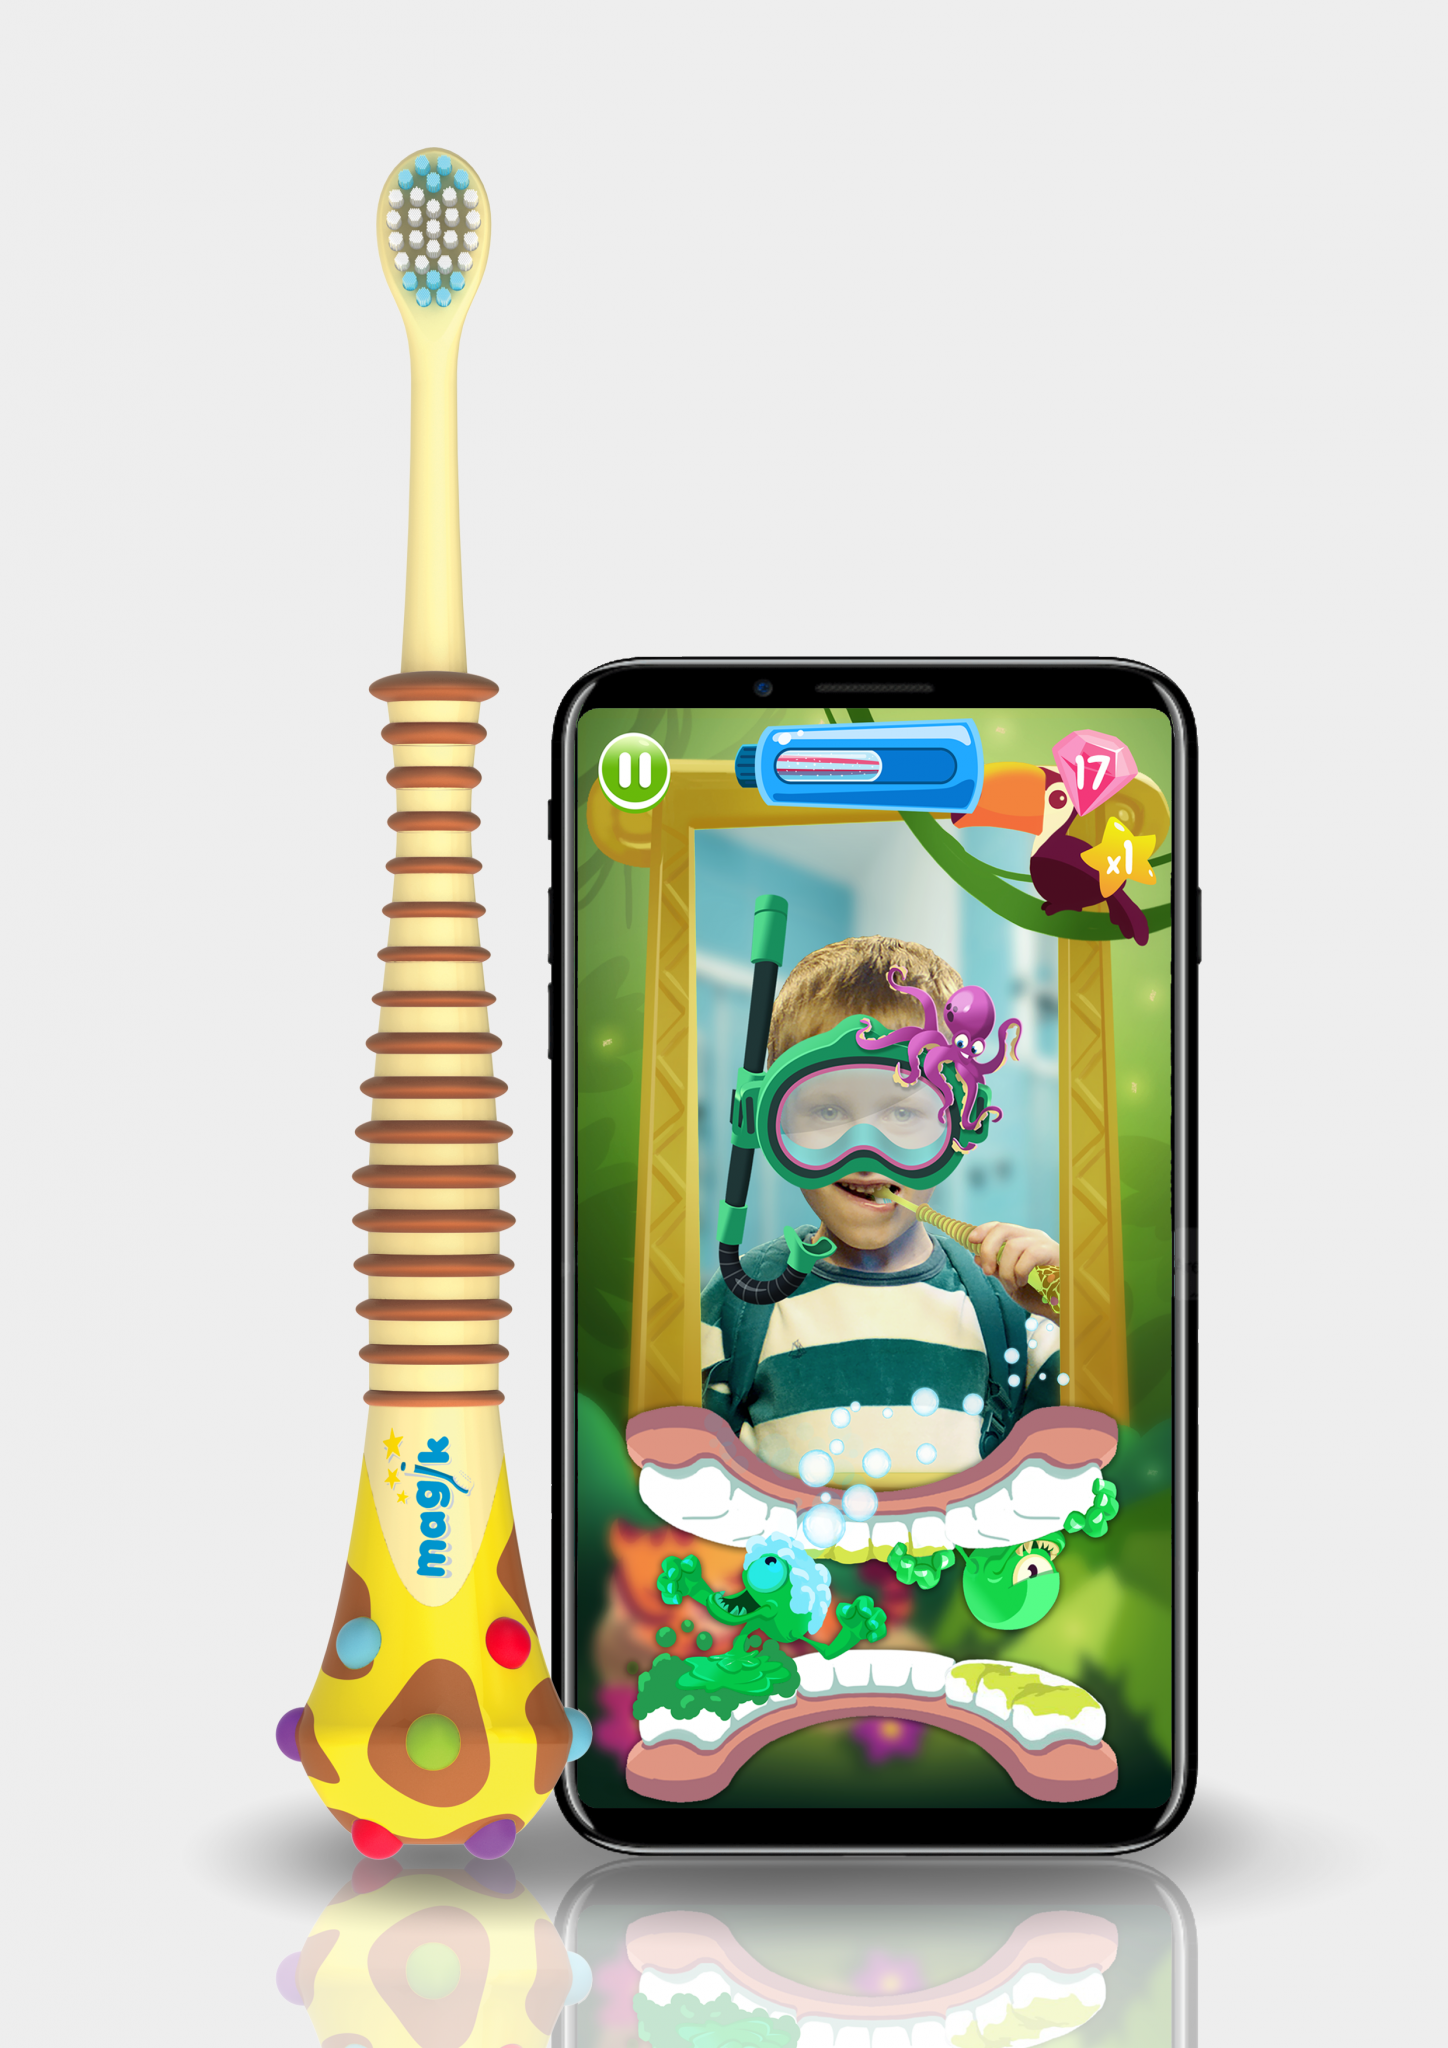 Kolibree's augmented reality Magik toothbrush was shown at CES 2018